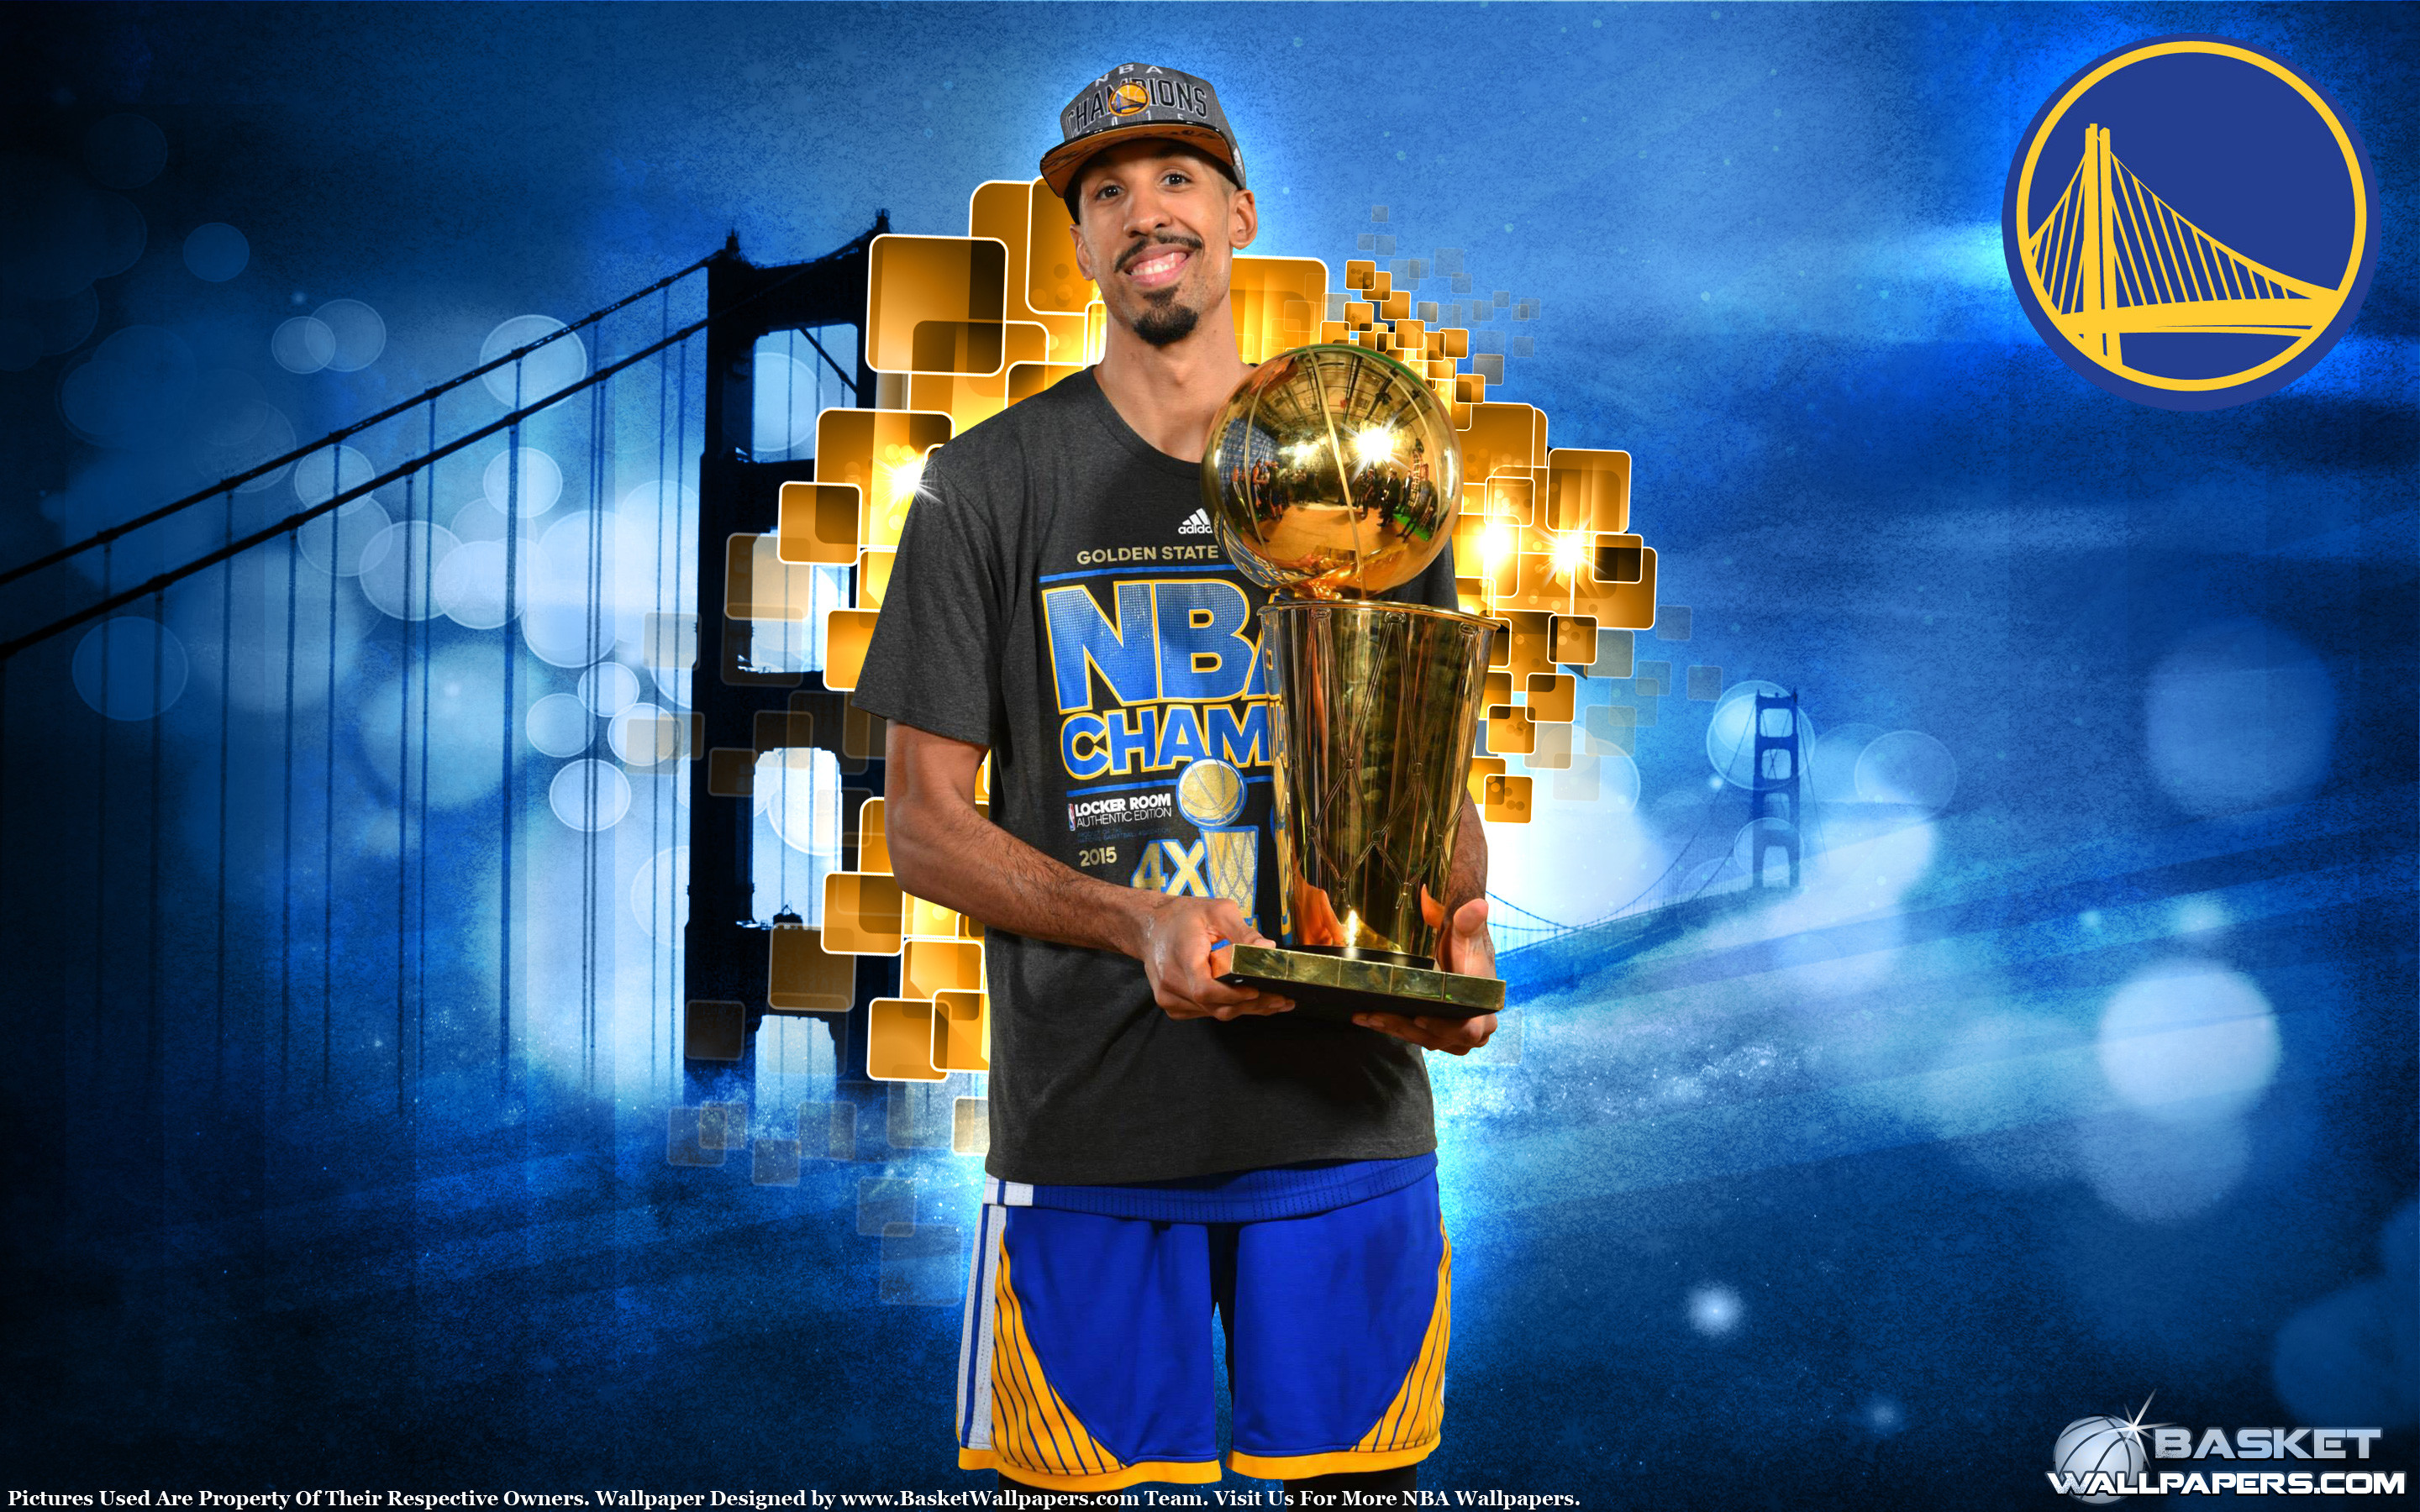 2880x1800 Basketball Club Golden State Warriors wallpaper hd new collection 2 ...